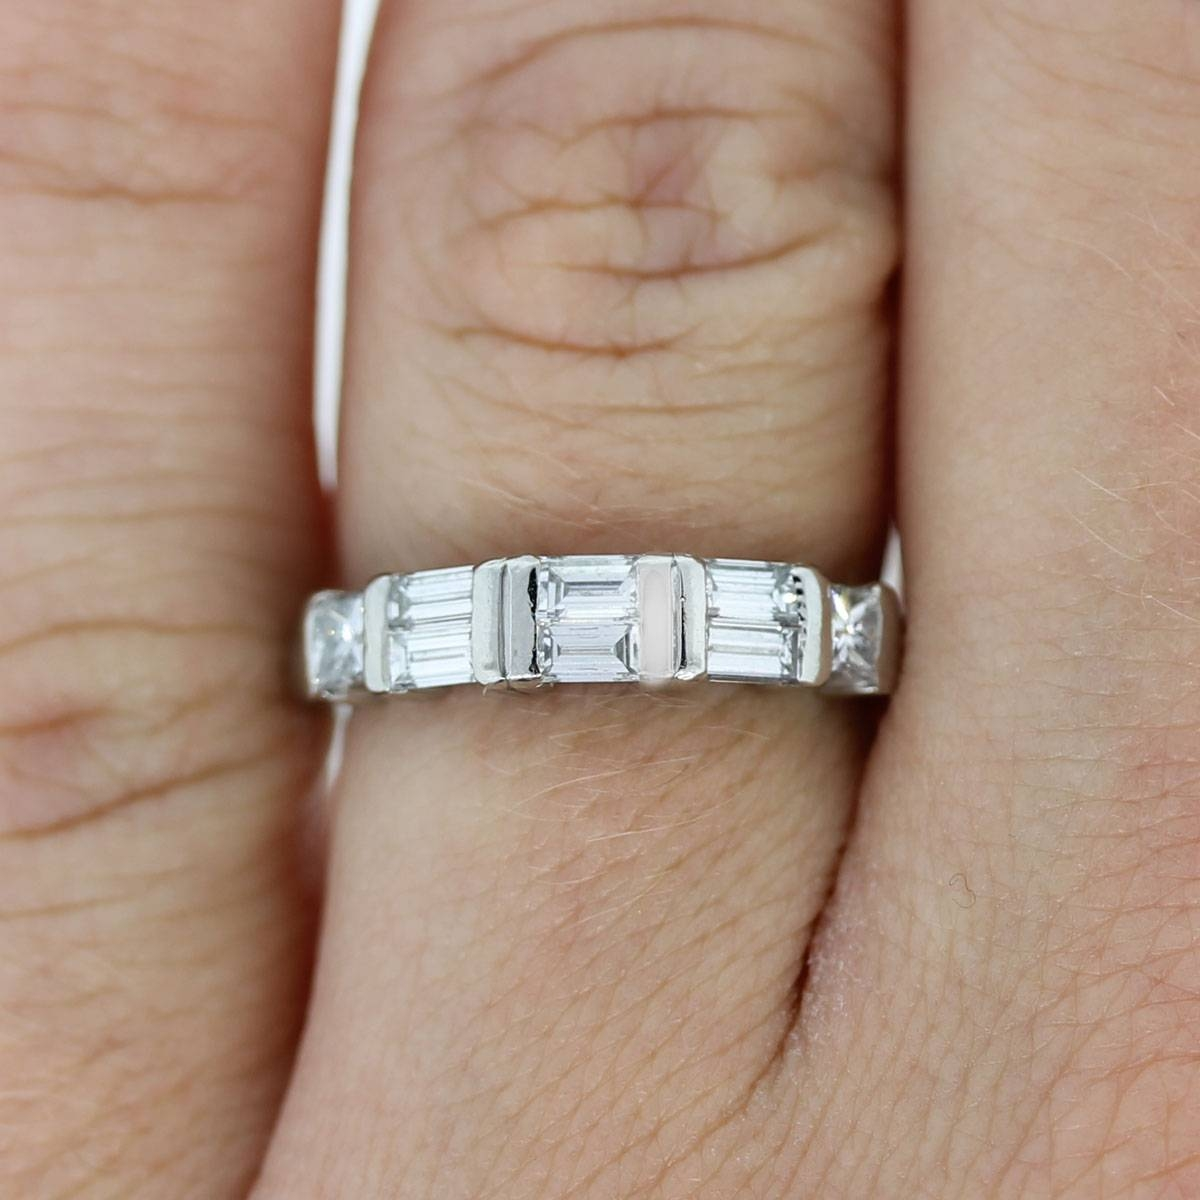 15 Best Collection Of Wedding Bands With Baguettes